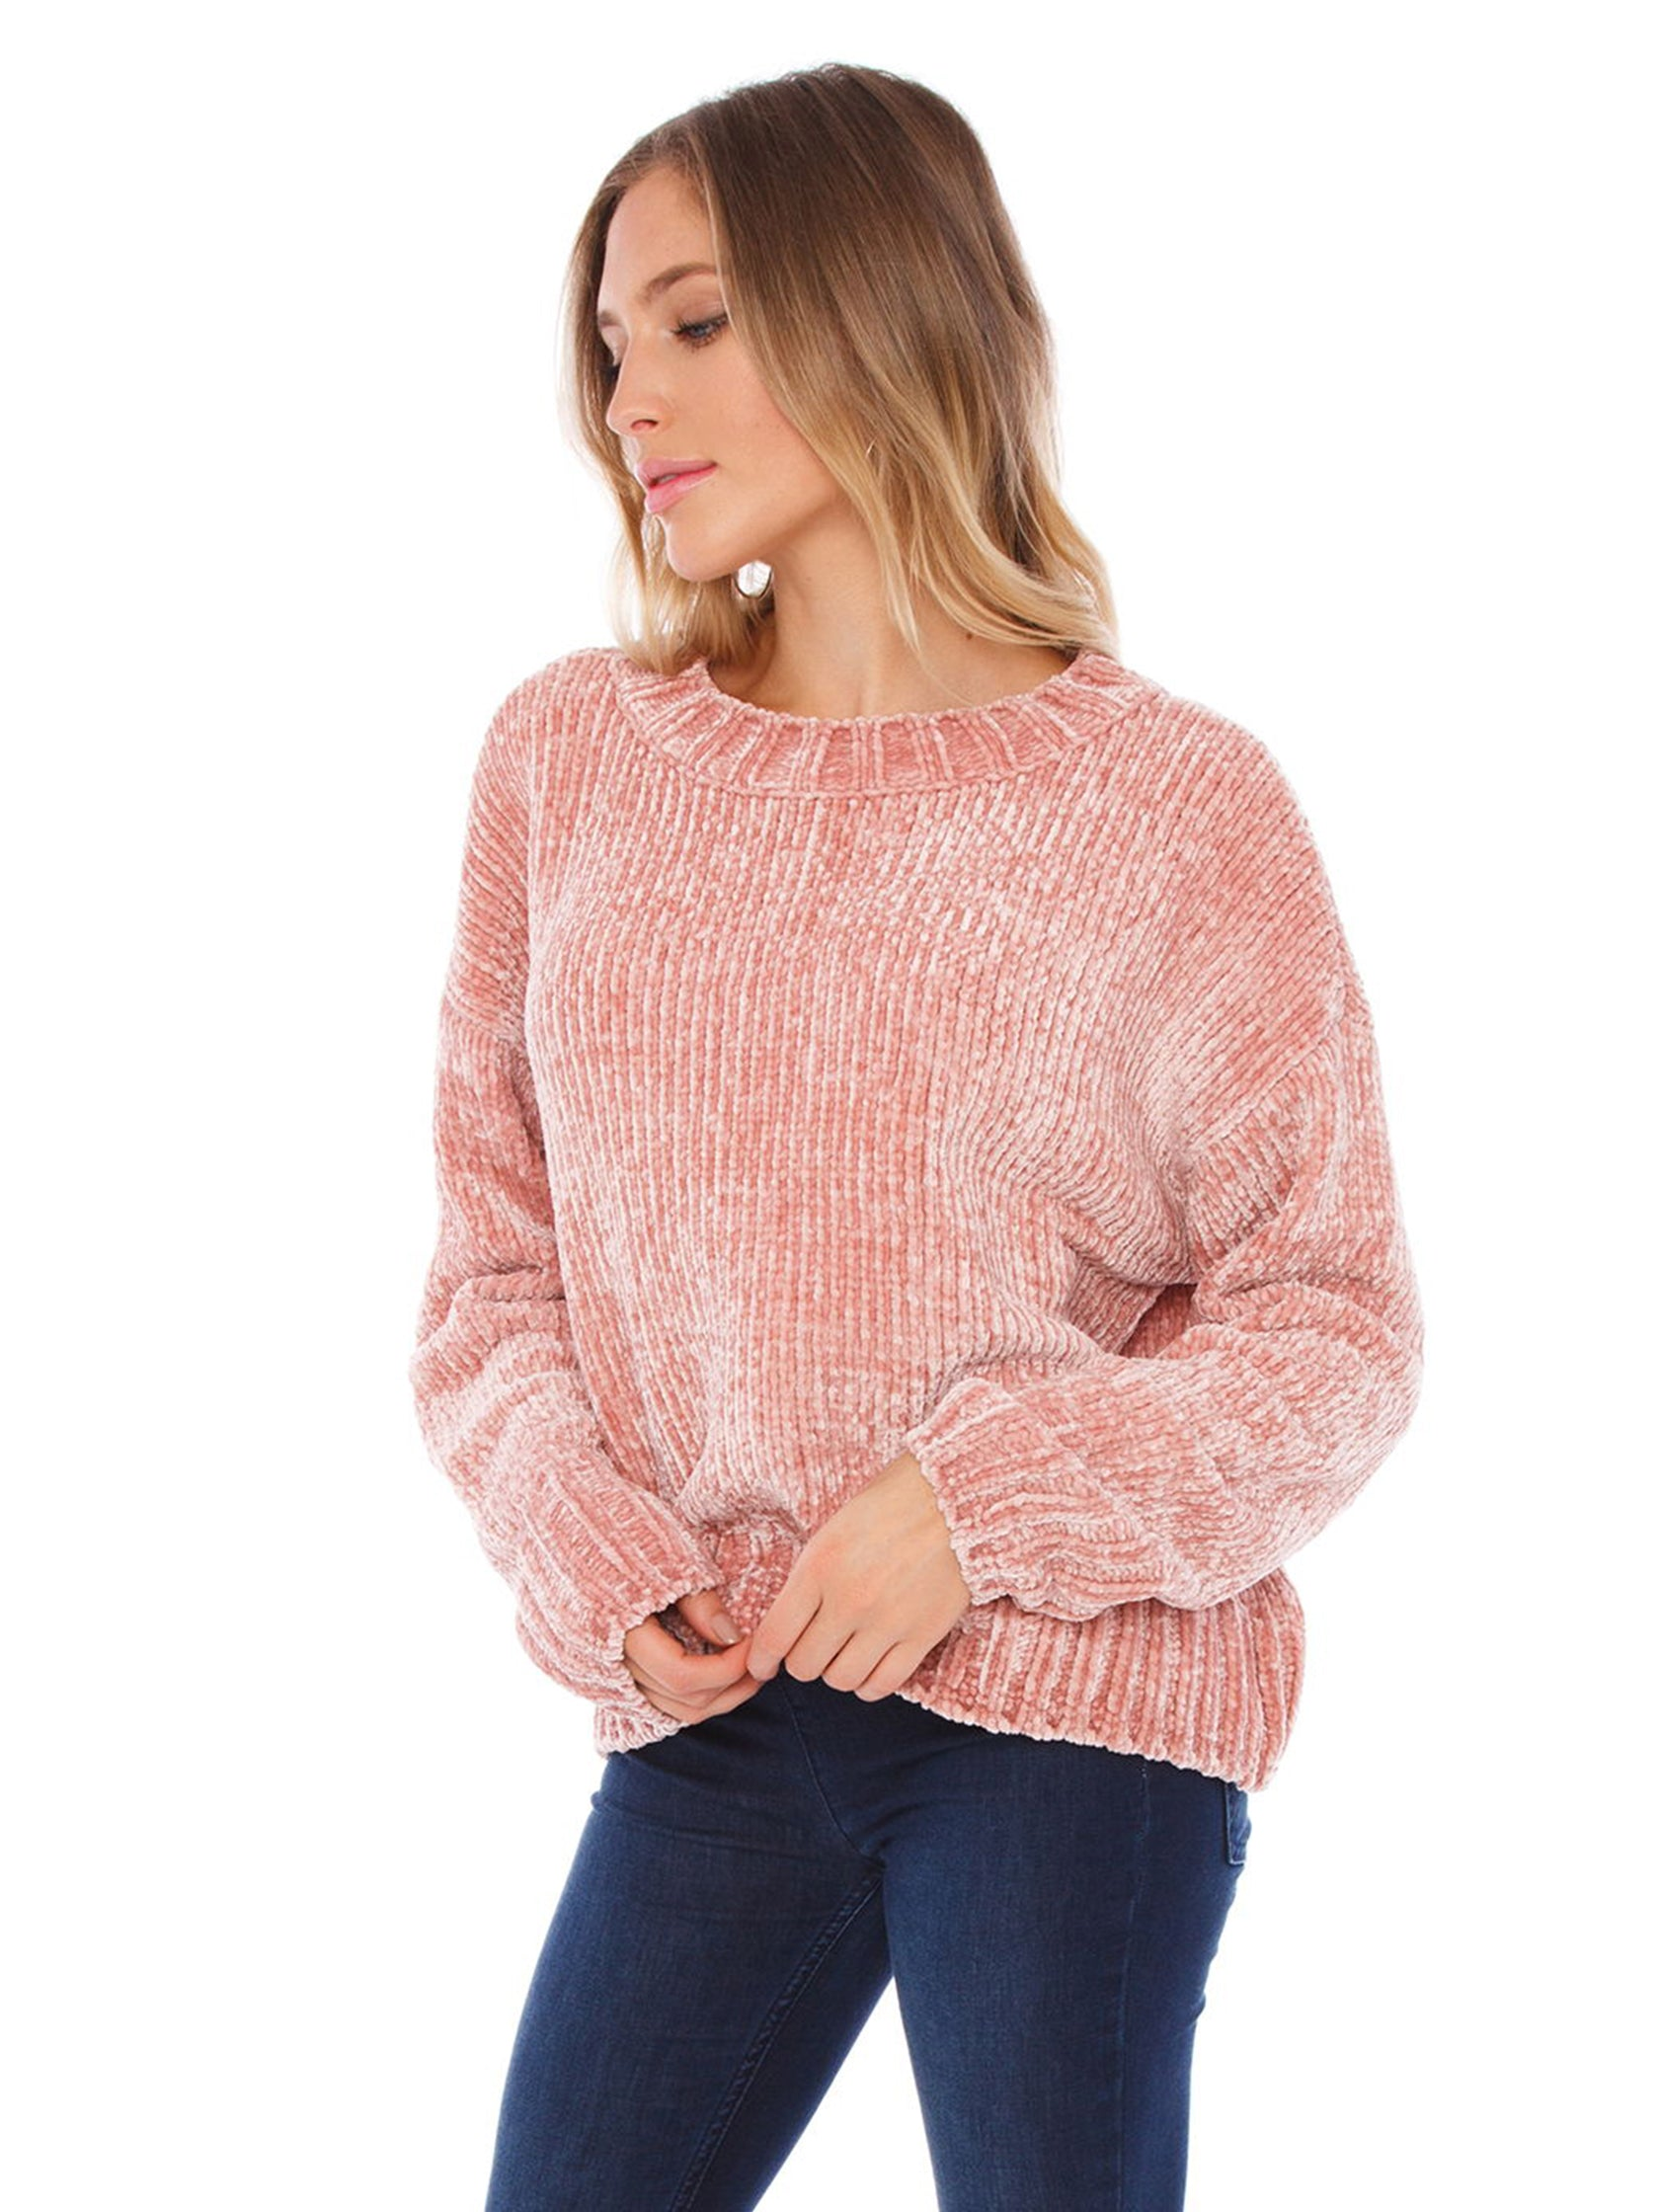 Women wearing a sweater rental from SANCTUARY called Chenille Pullover